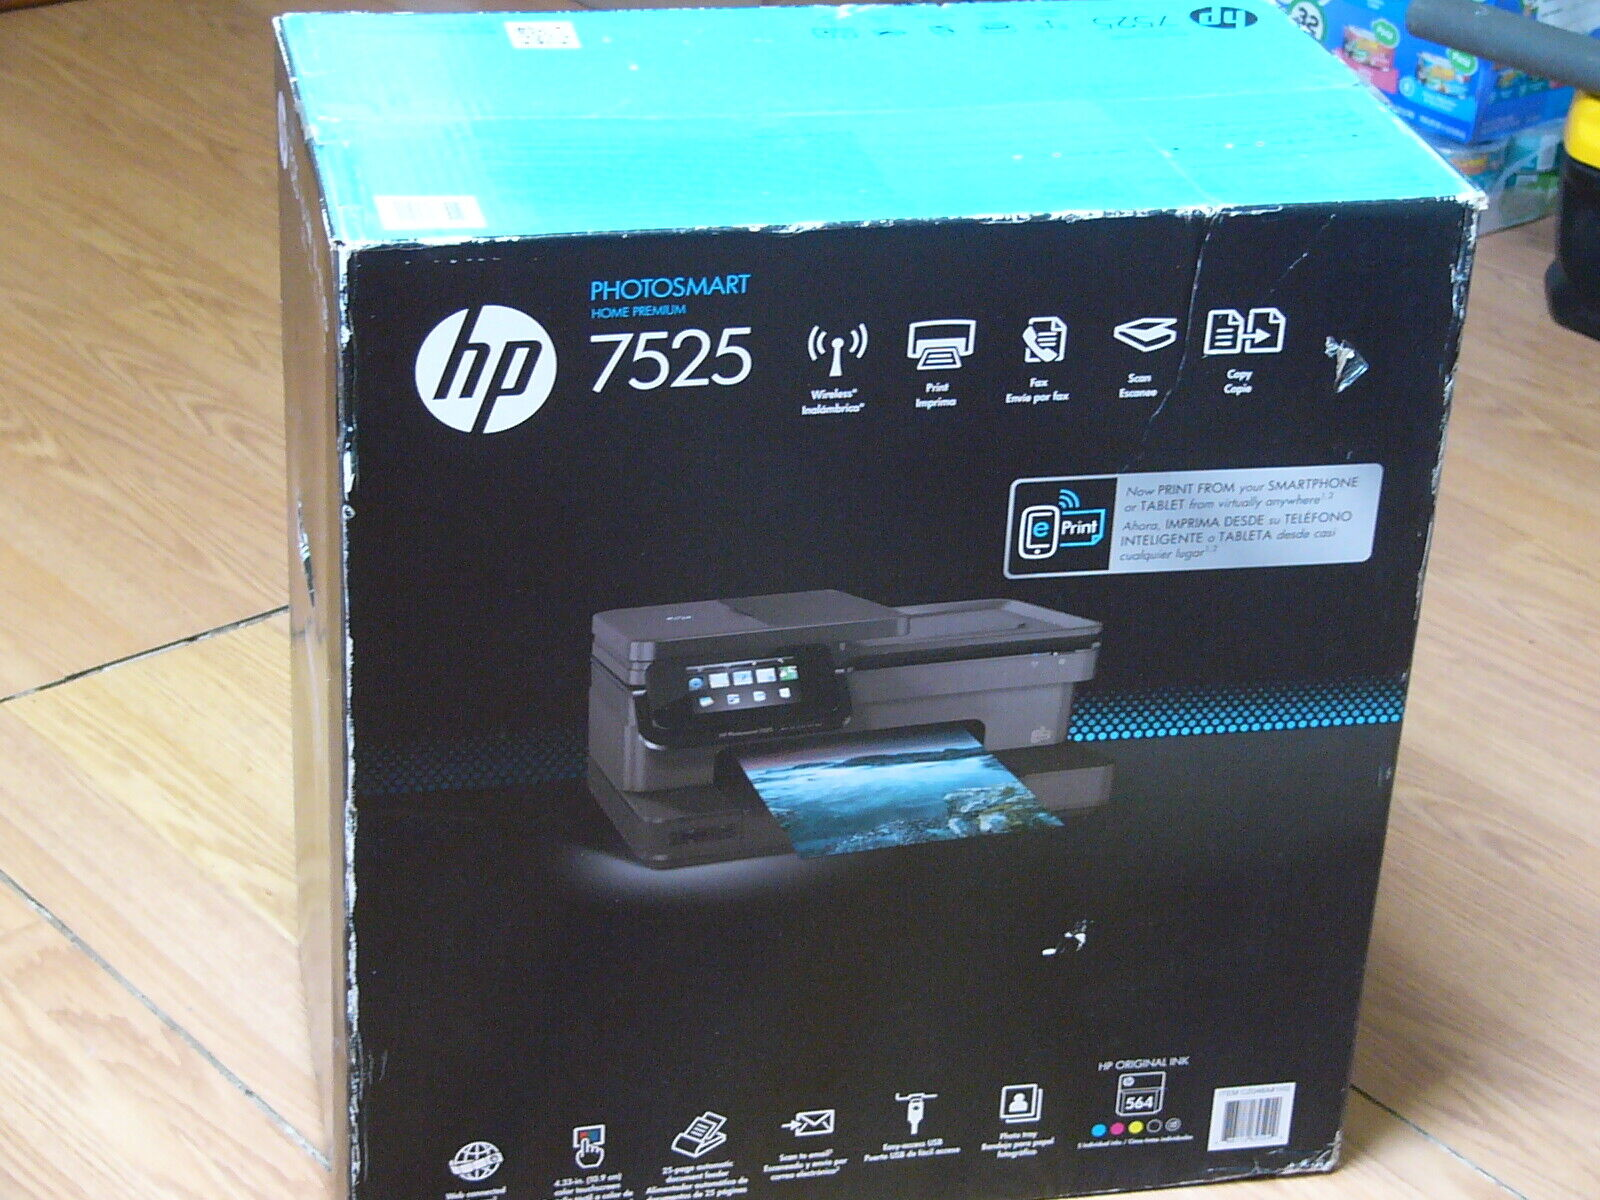 new photosmart 7525 all in one printer